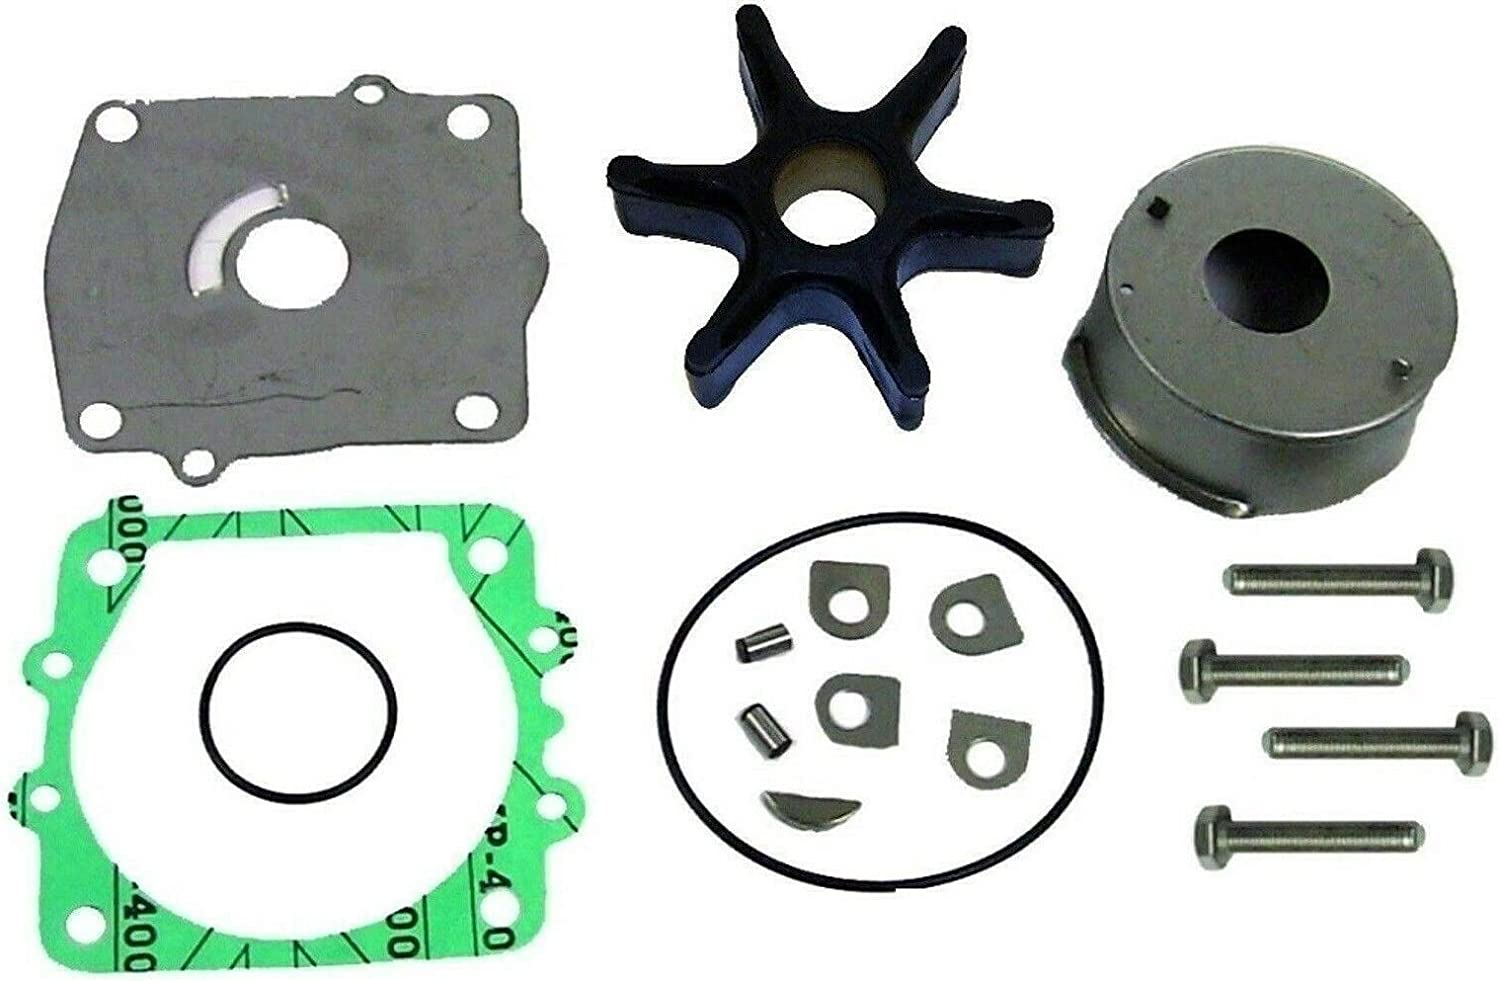 EMP Yamaha 115 & 130 hp 1993-2004 V4 2 Stroke Water Pump Impeller Kit Replaces 18-3312 6N6-W0078-00-00 Read Item Description for Applications